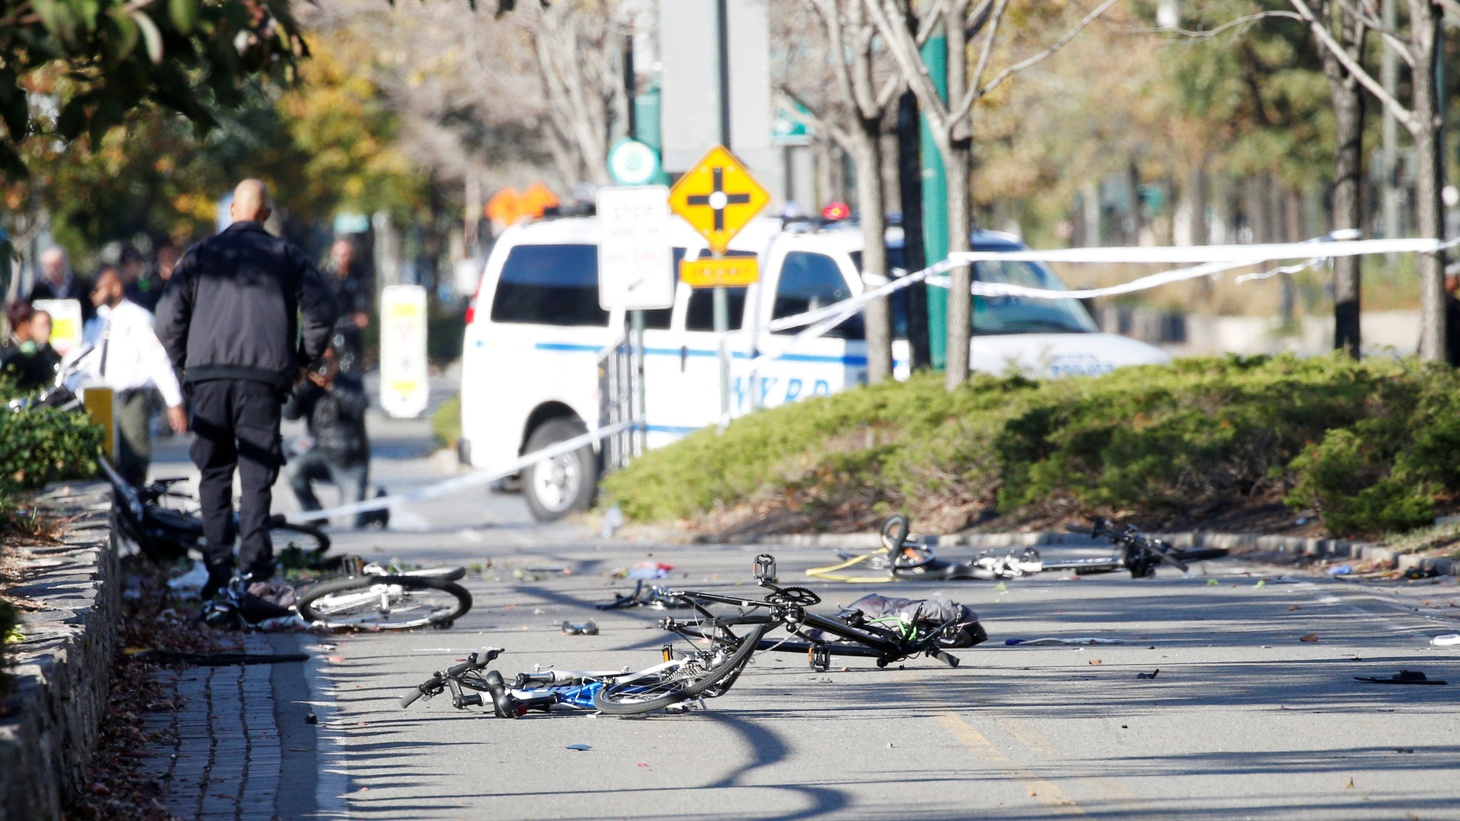 In New York yesterday, a 29-year-old Green Card holder from Uzbekistan mowed down pedestrians and cyclists on a bike path near the rebuilt World Trade Center. Eight people were killed — at least six were tourists from Argentina and Belgium.